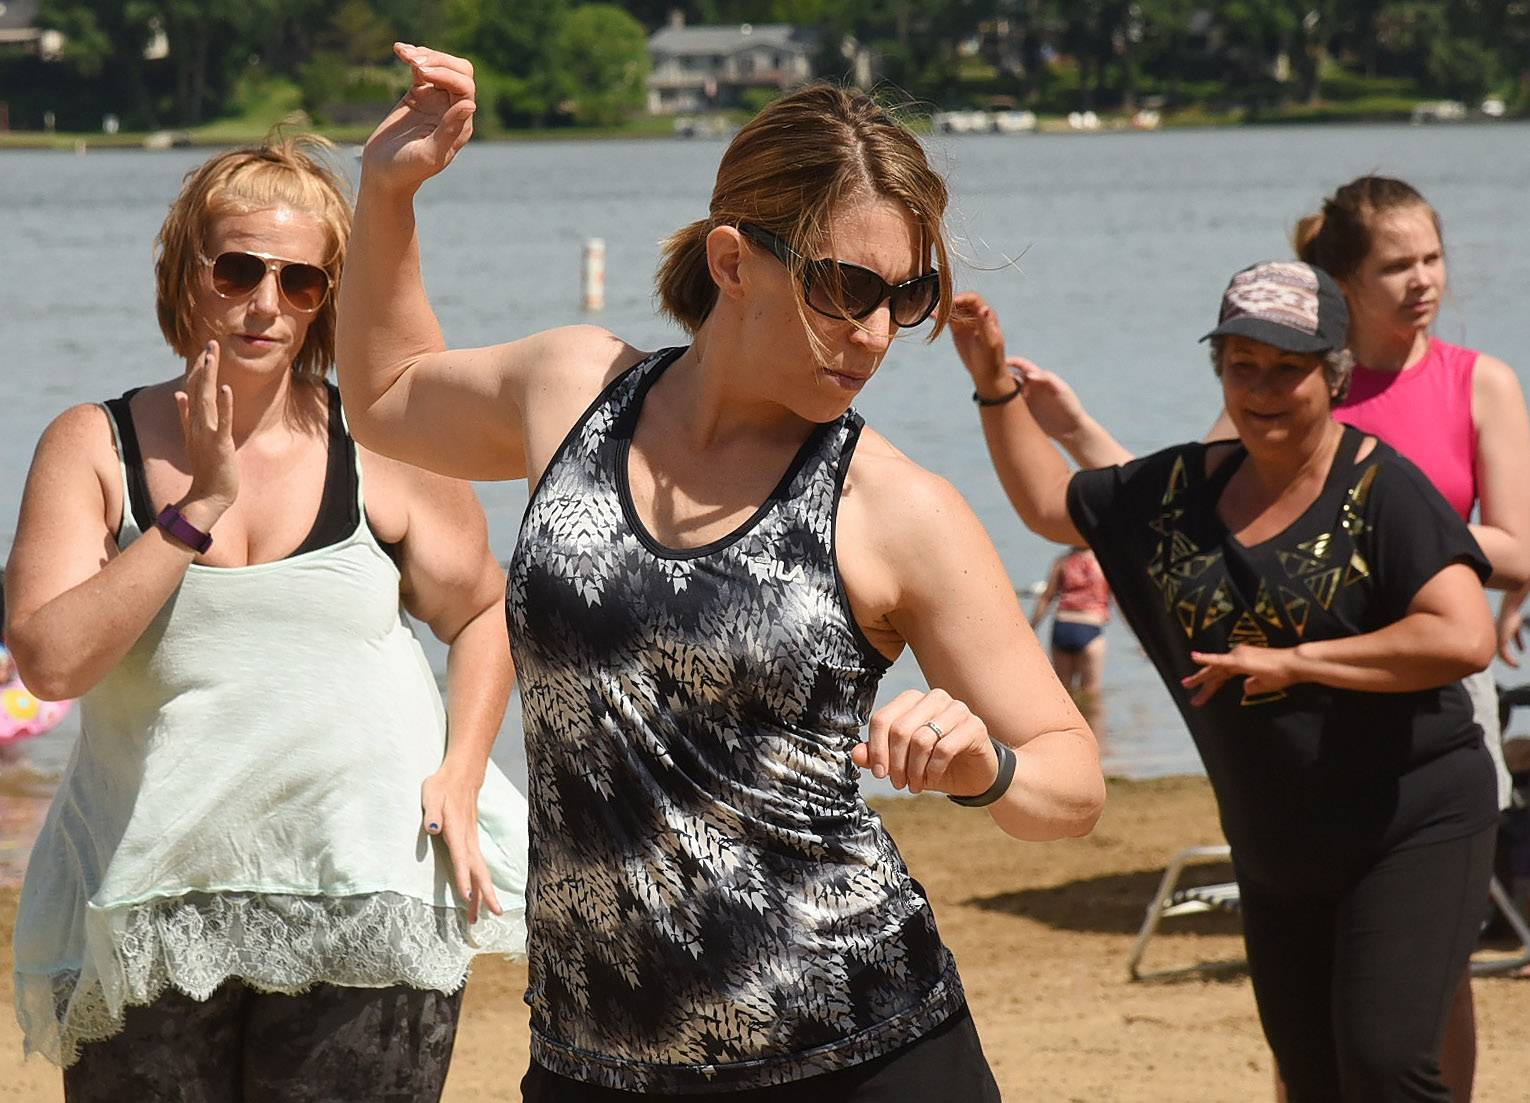 Marni Steinfort of Wauconda, a Saturday morning Zumba regular, takes it to the beach, during Mundelein Park & Recreation District's Community Picnic at Diamond Lake Beach.